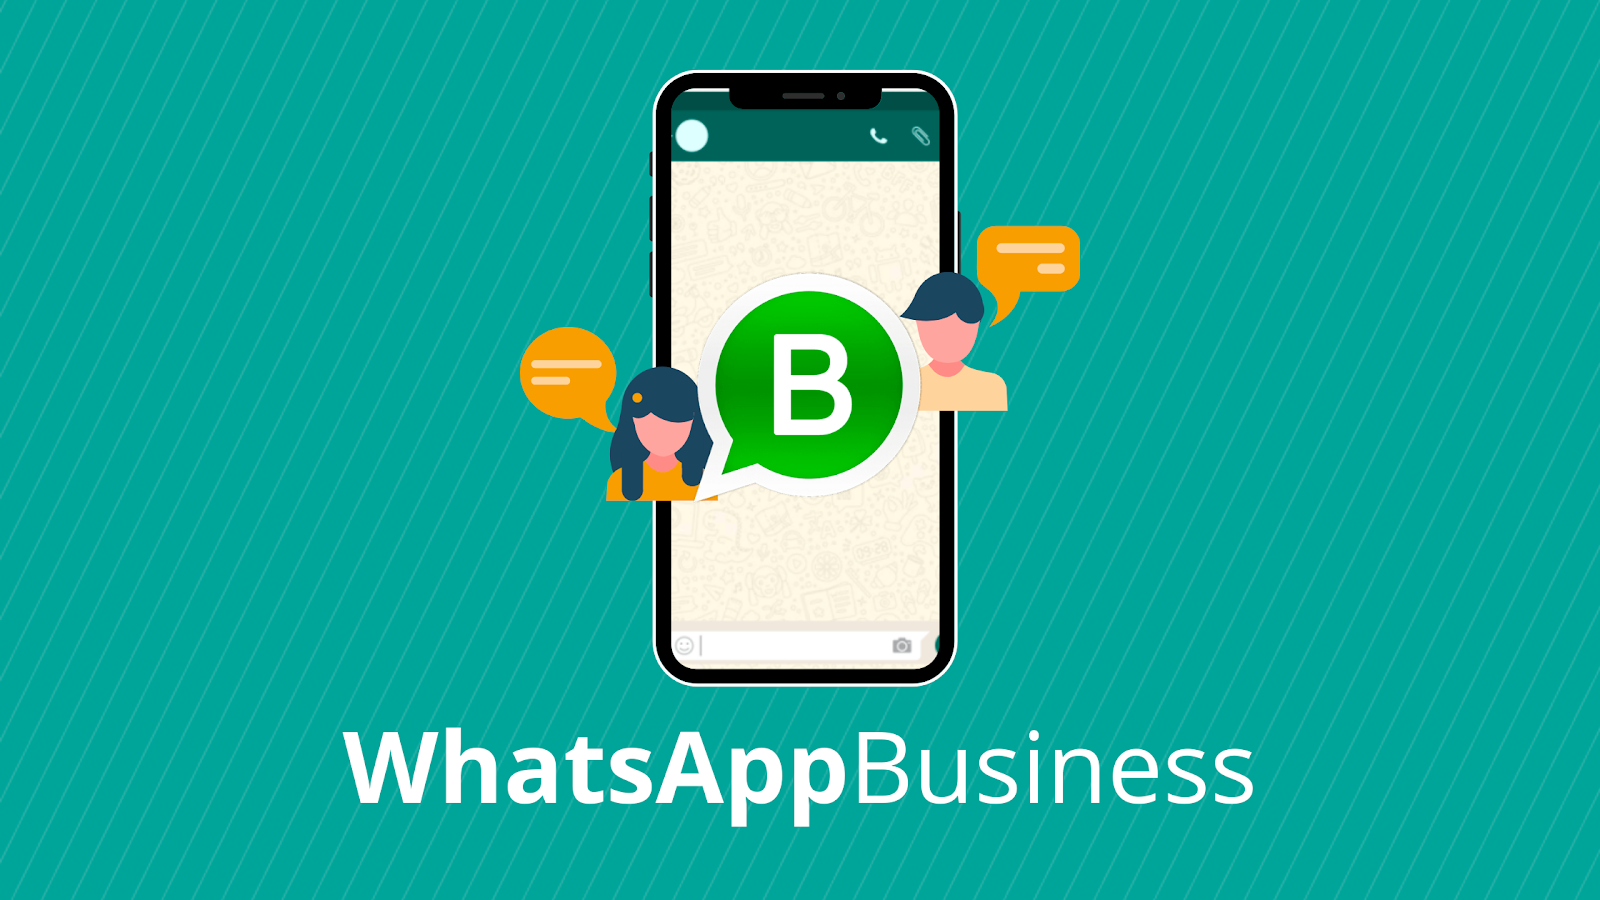 Get access to WhatsApp Business API